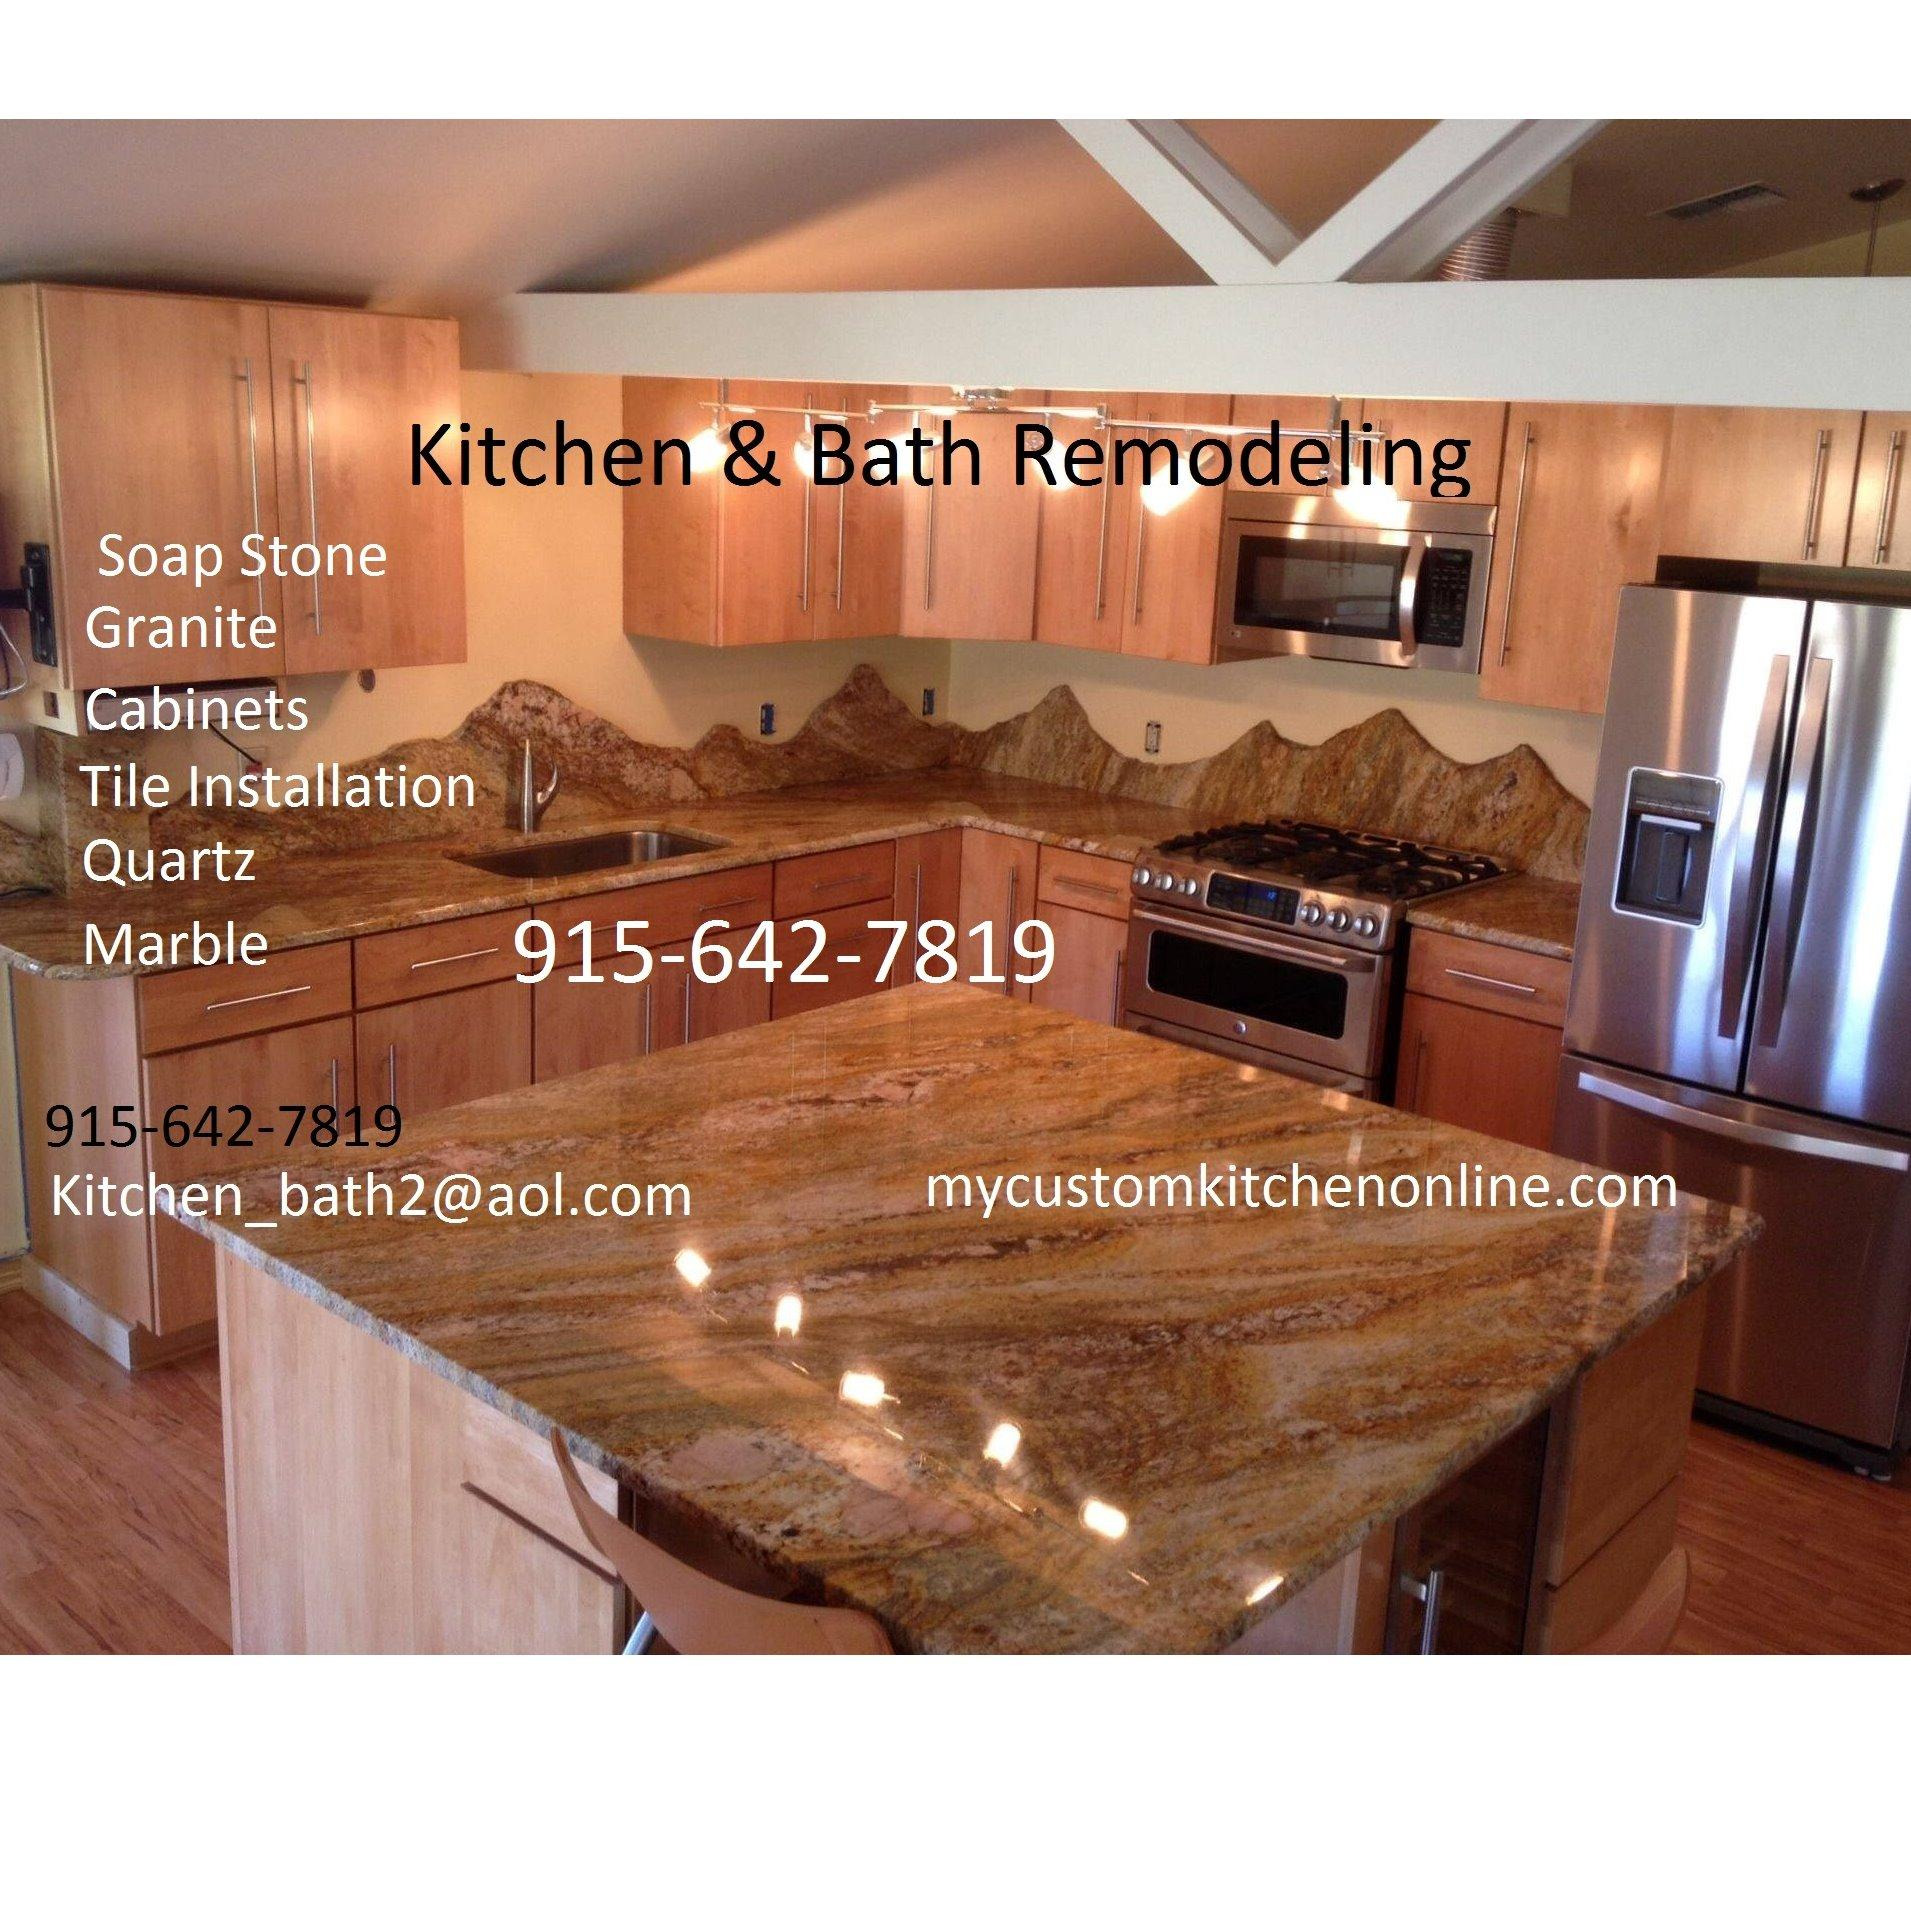 Kitchen bath remodeling coupons near me in 8coupons for Bath remodeling near me